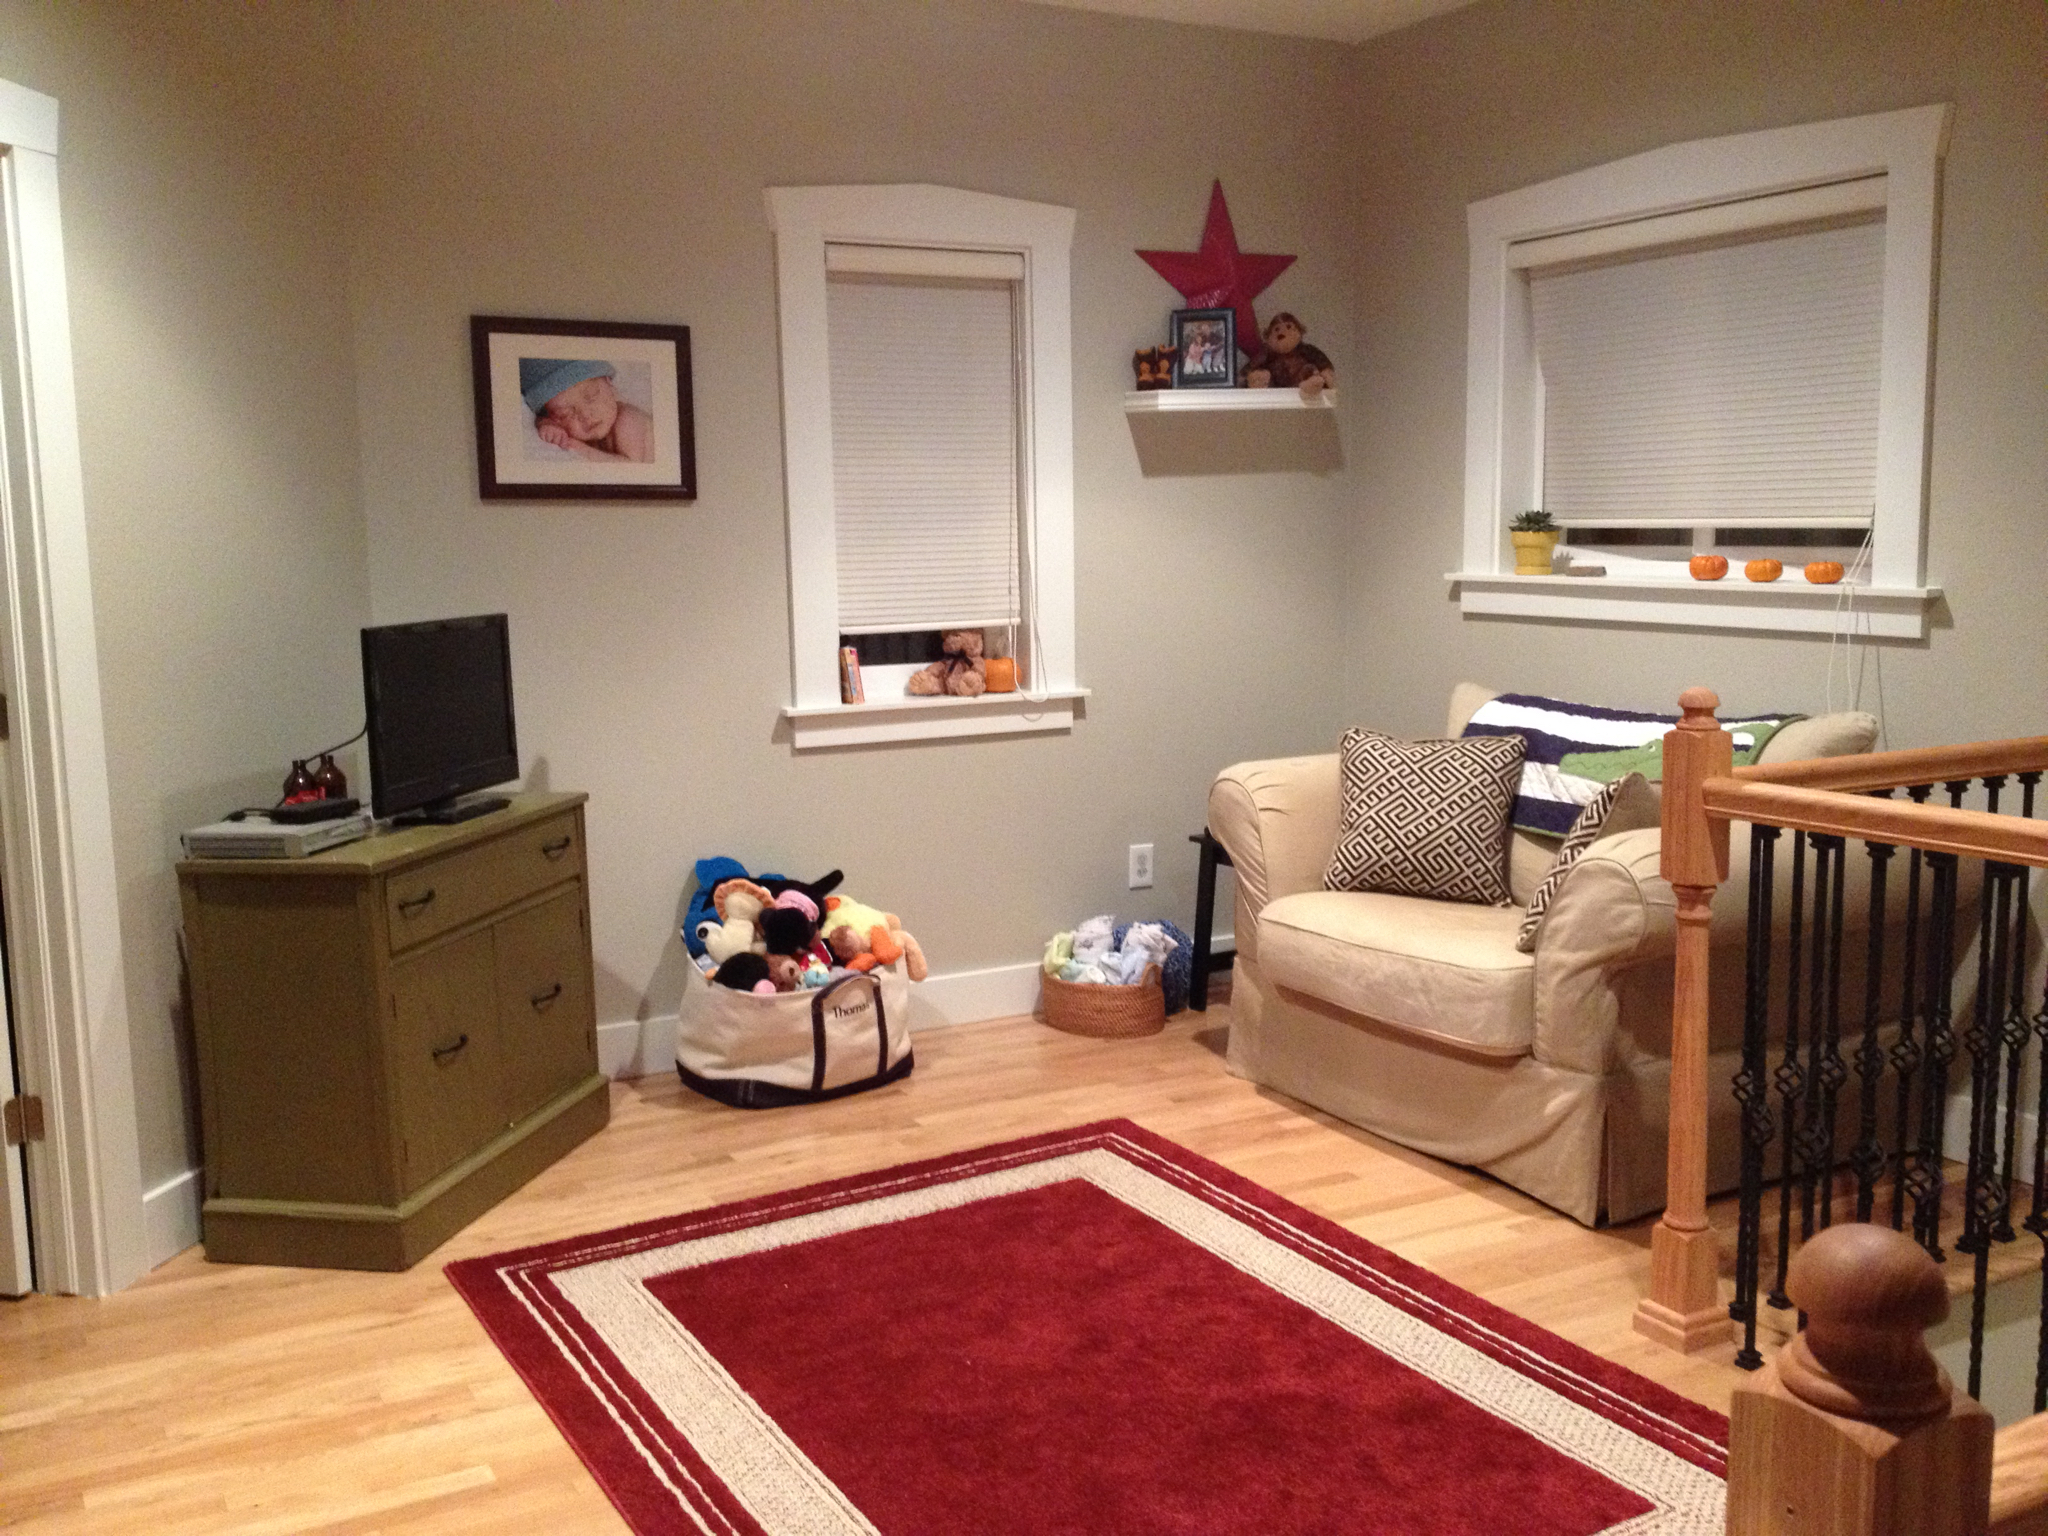 The upstairs landing with the new paint color Revere Pewter. We used it as a playroom while living in the home.